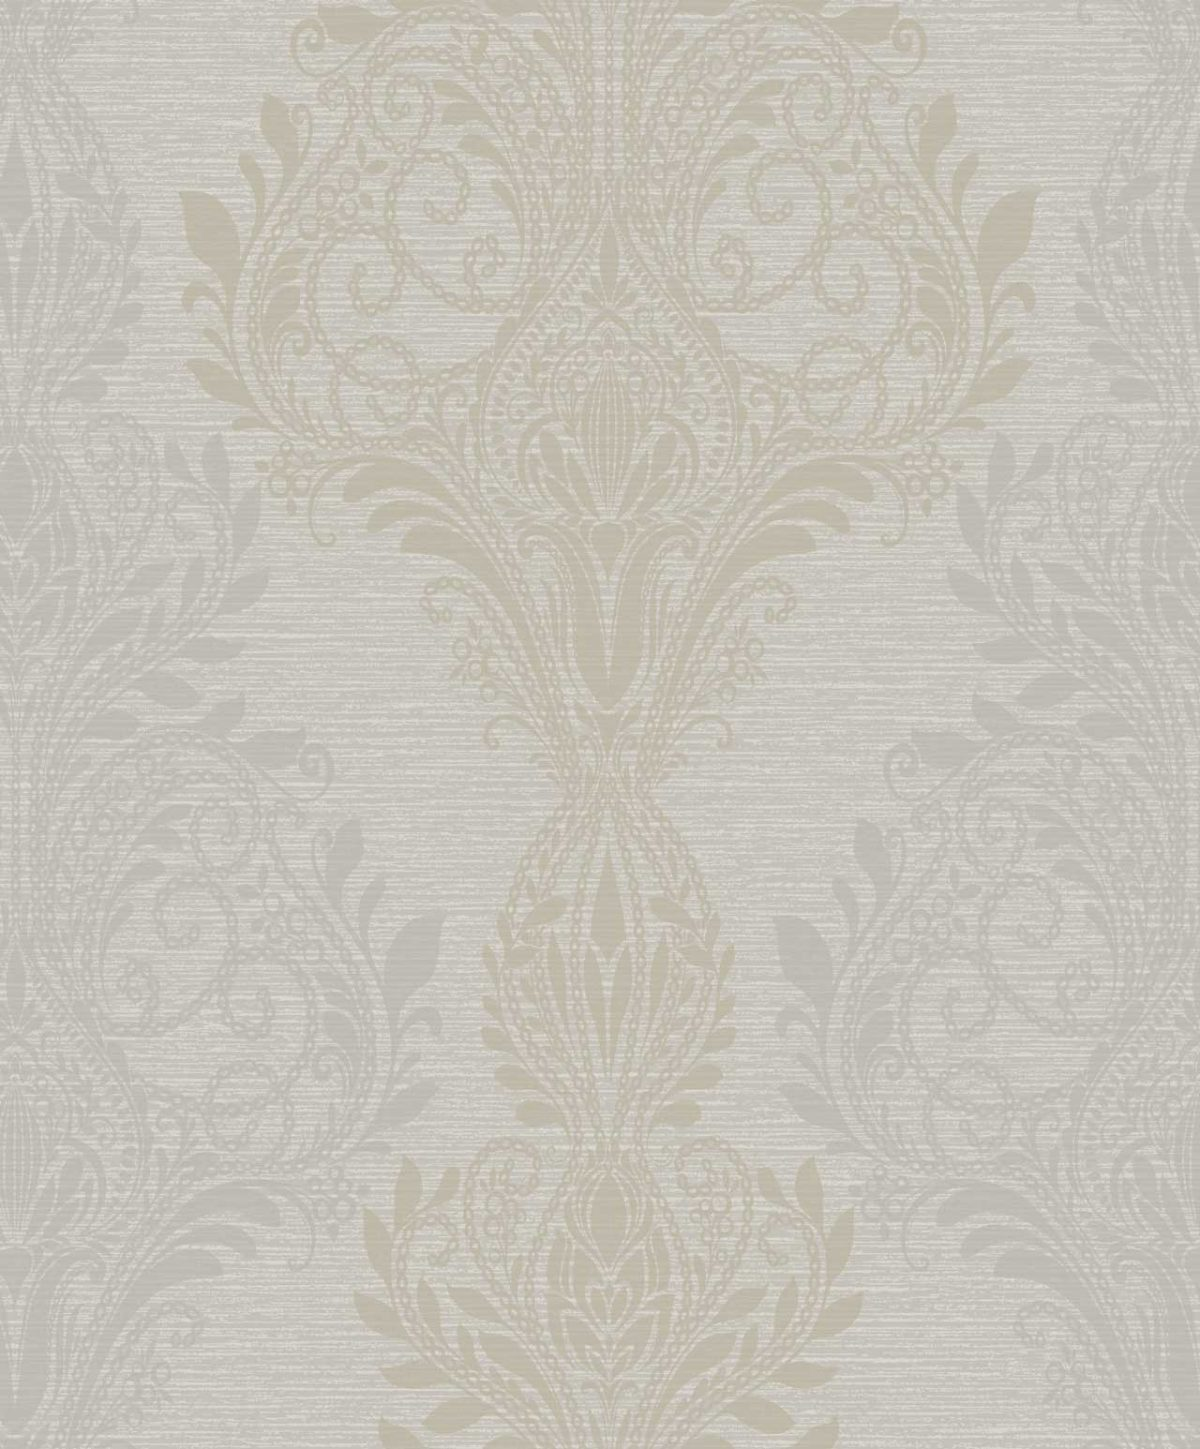 Sloan-Luxury-Wallpaper-SL00808-SLOANE-DAMASK